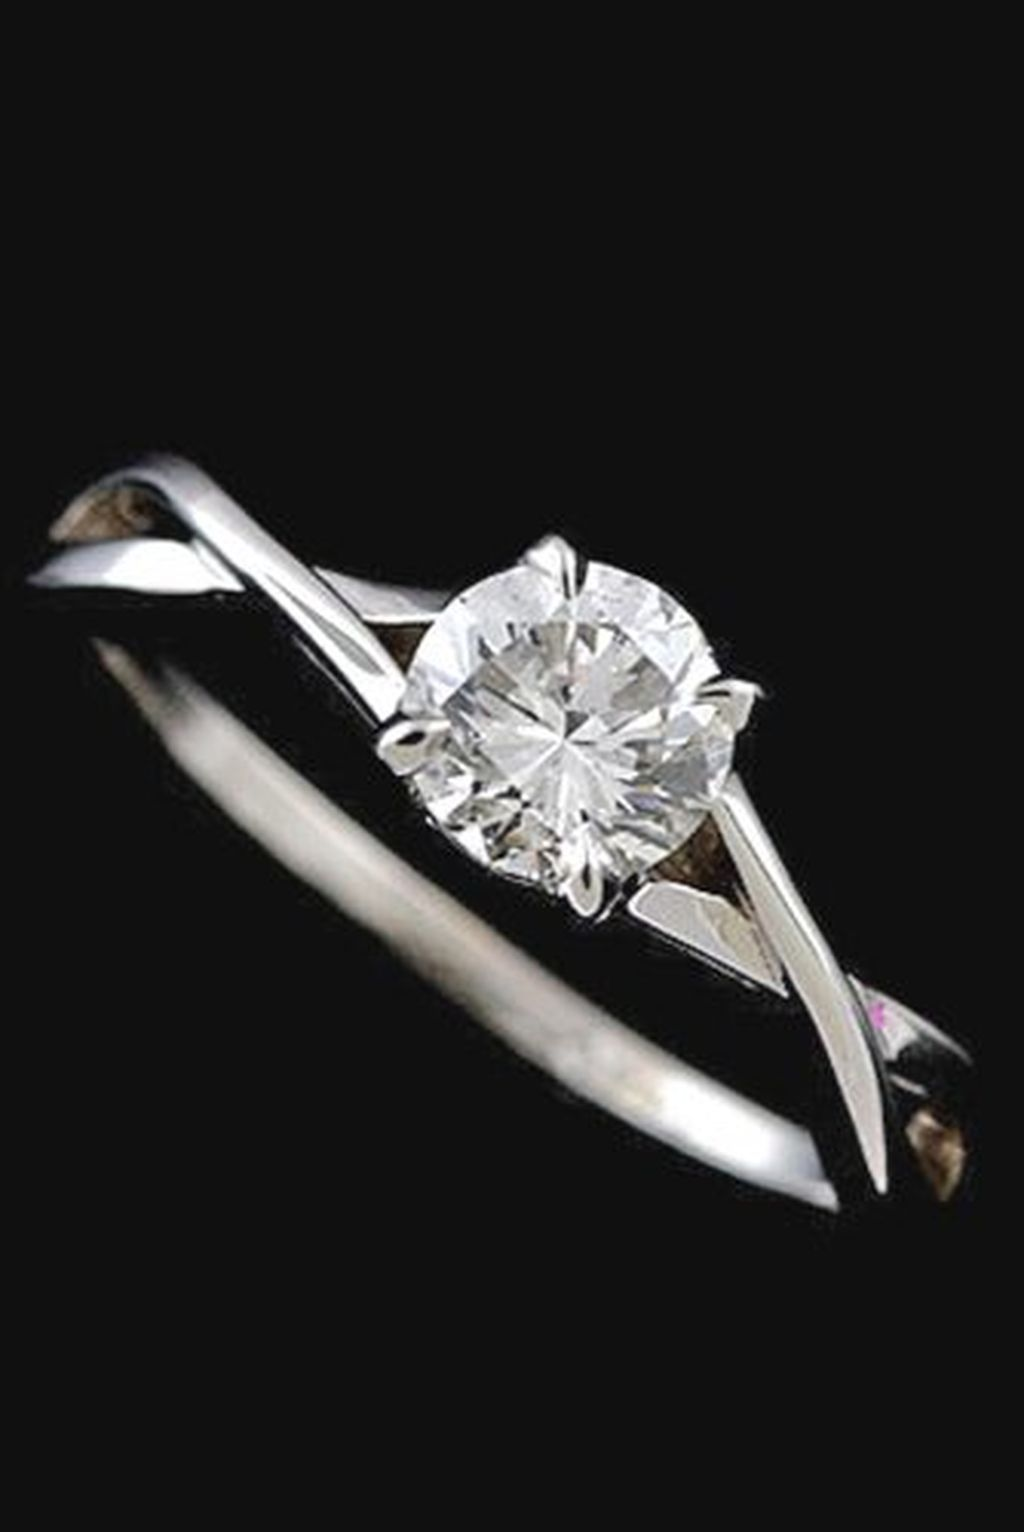 cool 62 Unique and Affordable Engagement Rings Ideas for Your Lovely Person  http://lovellywedding.com/2017/09/28/62-unique-and-affordable-engagement-rings-ideas-for-your-lovely-person/